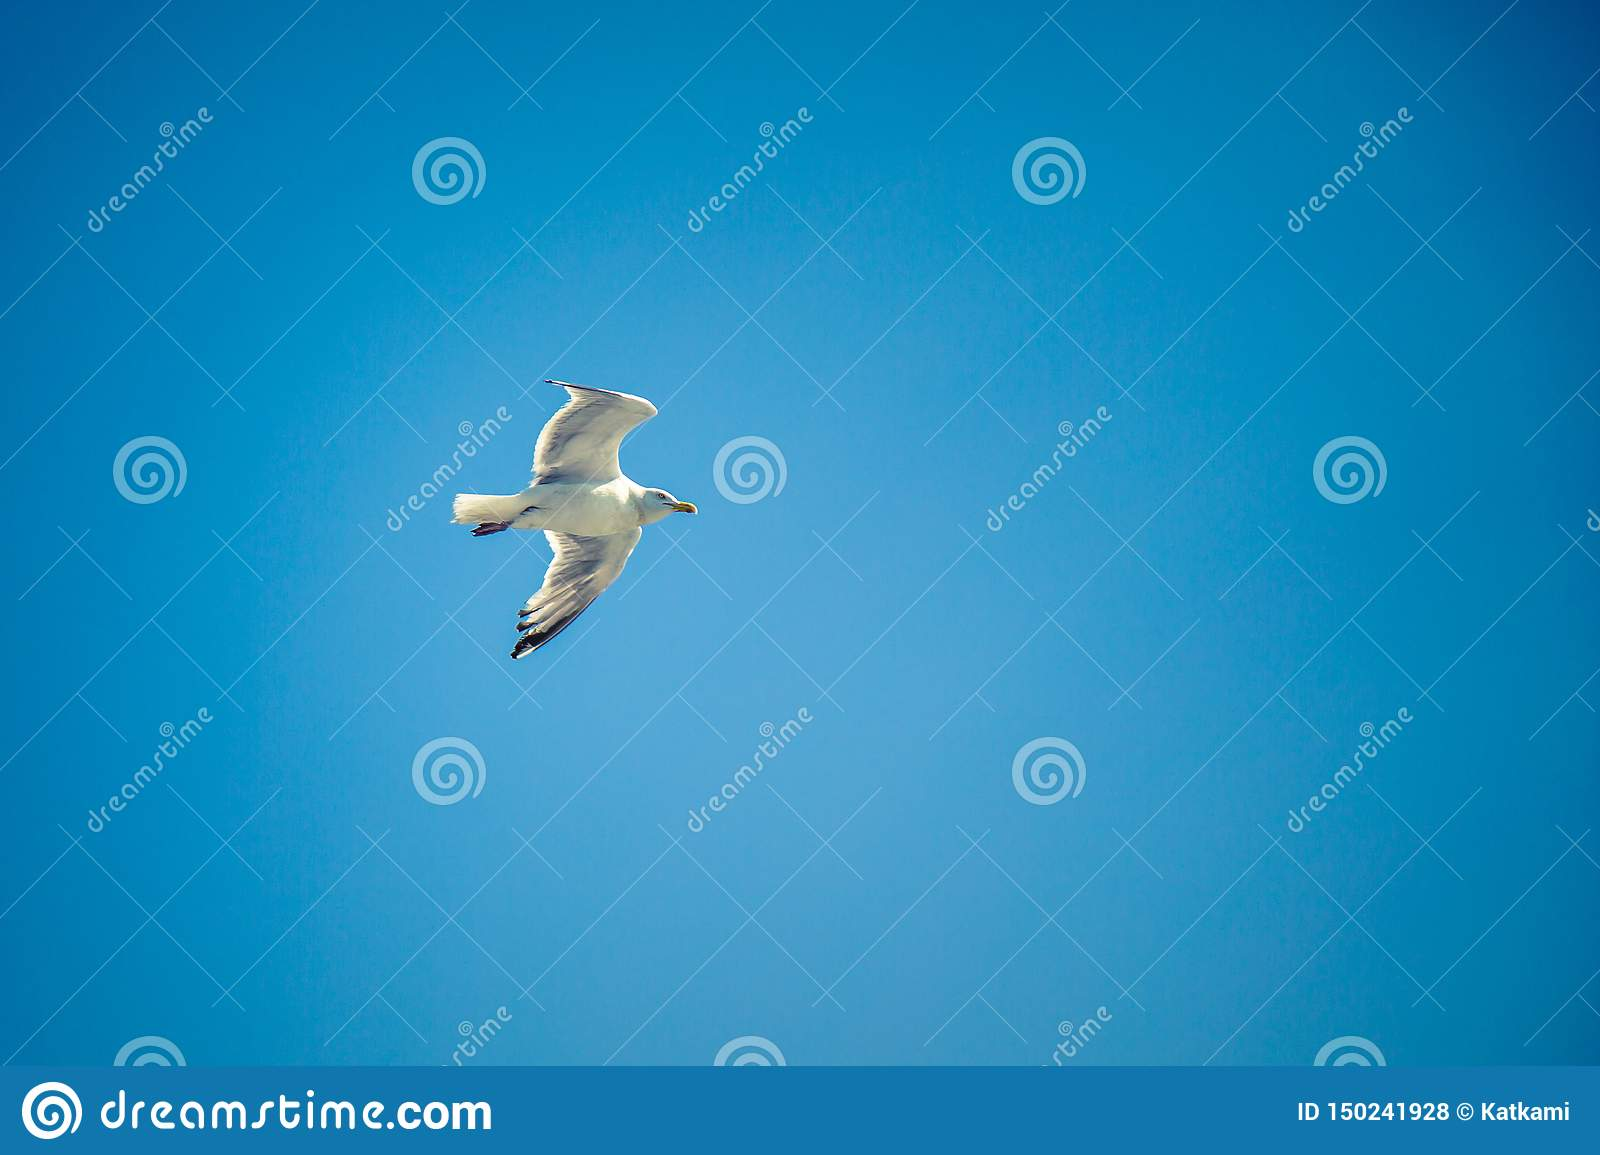 Seagull flying high in a clear blue sky